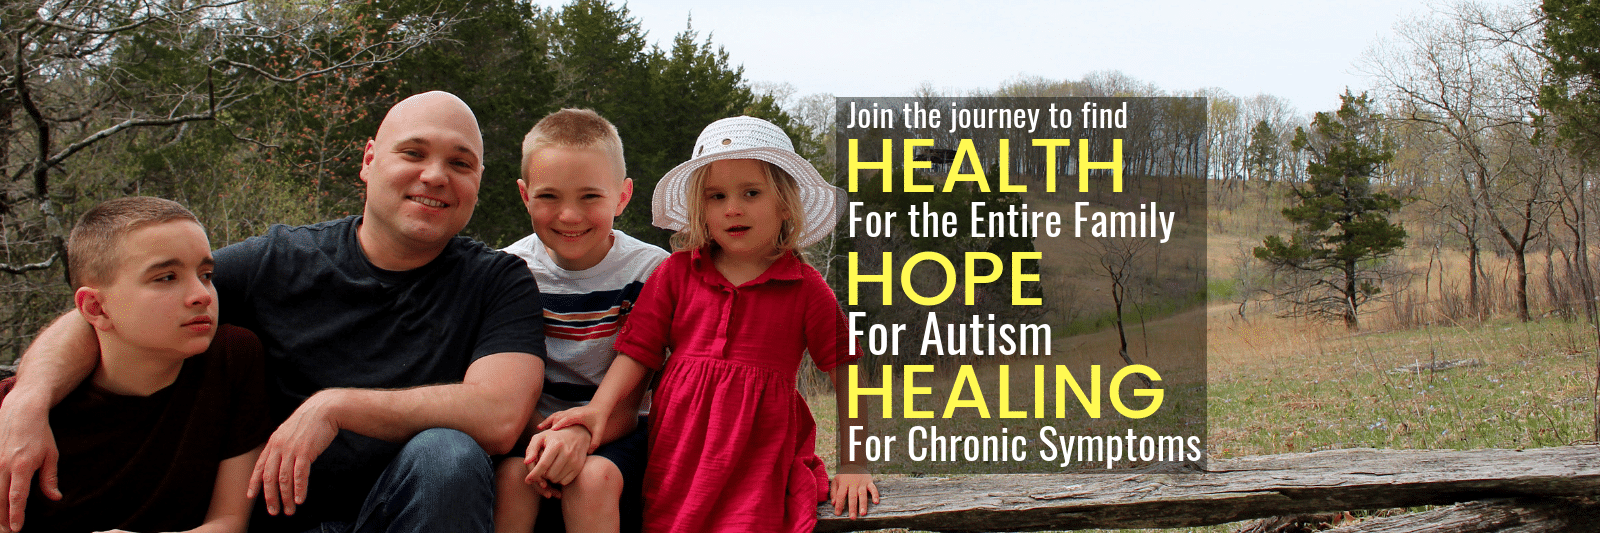 Health for family, hope for autism, healing for chronic symptoms